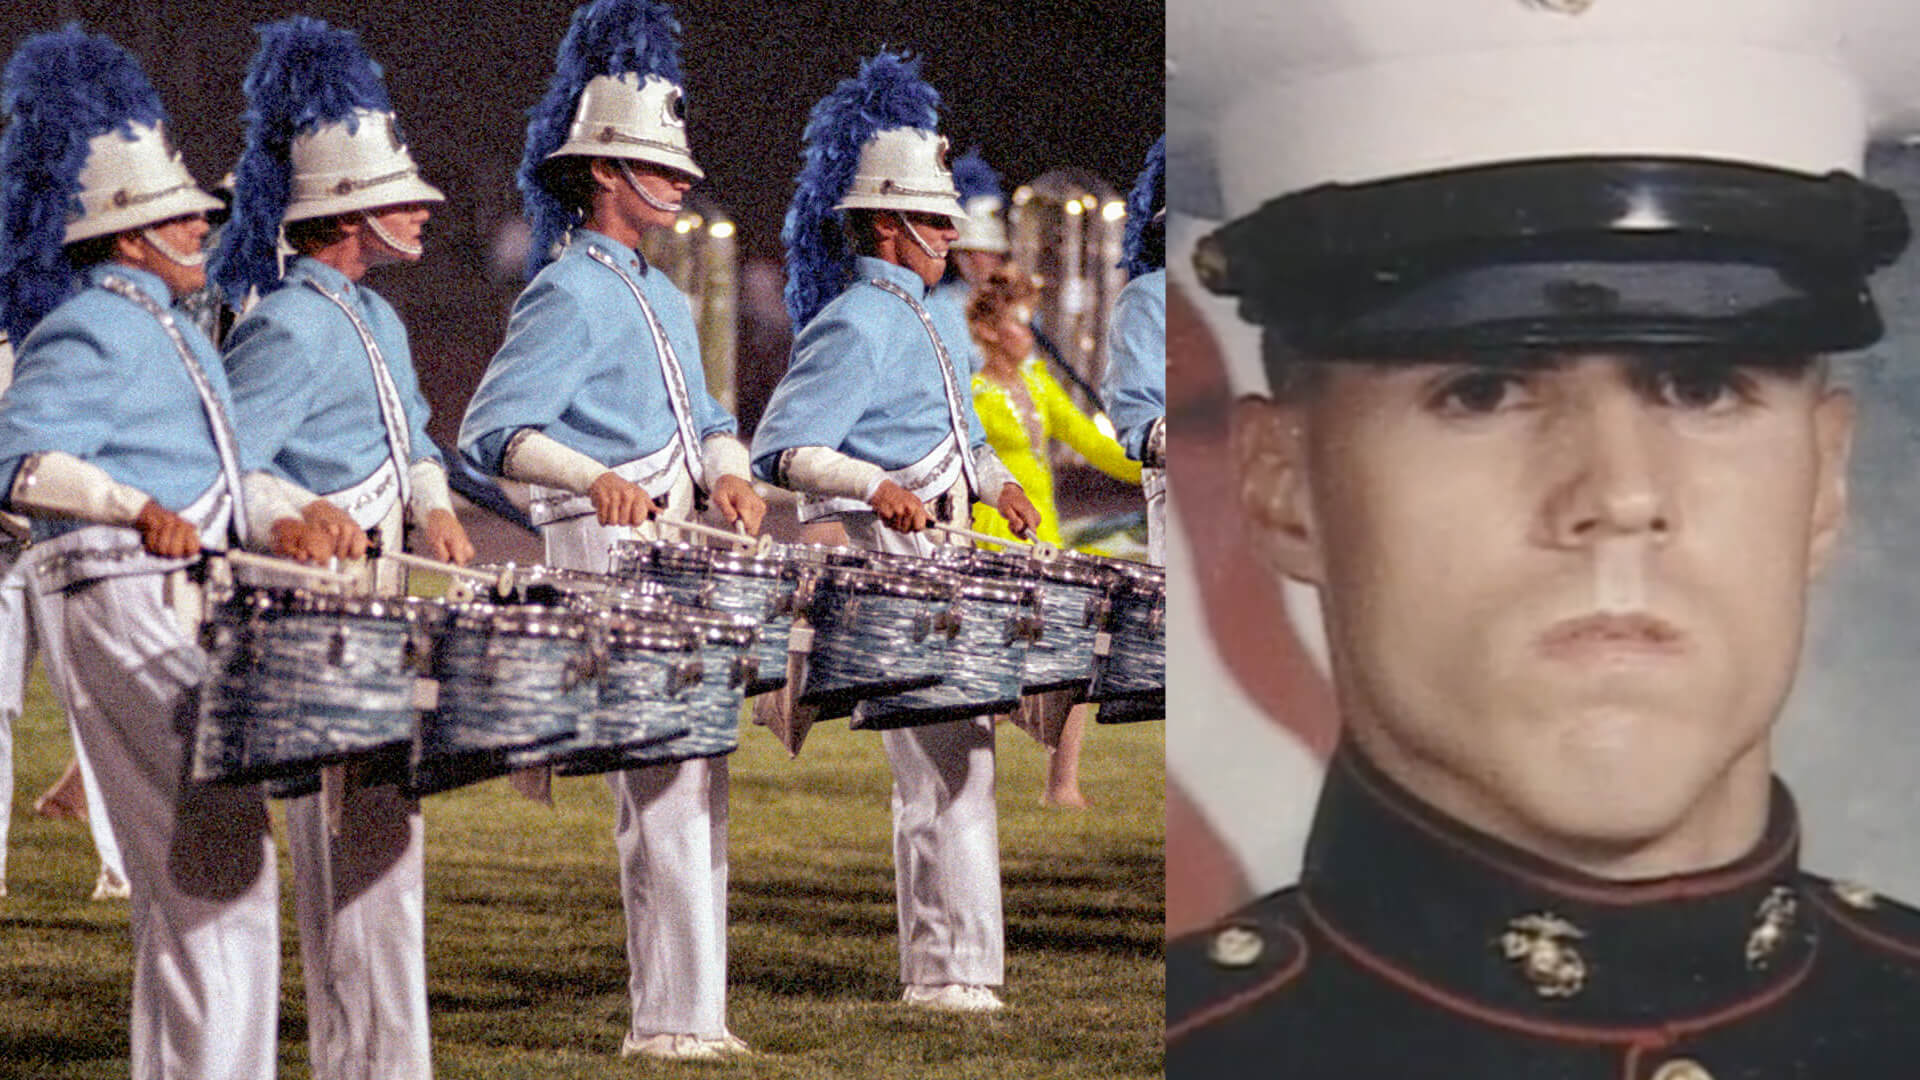 From the Marine Corps to an age-out season with the Bluecoats